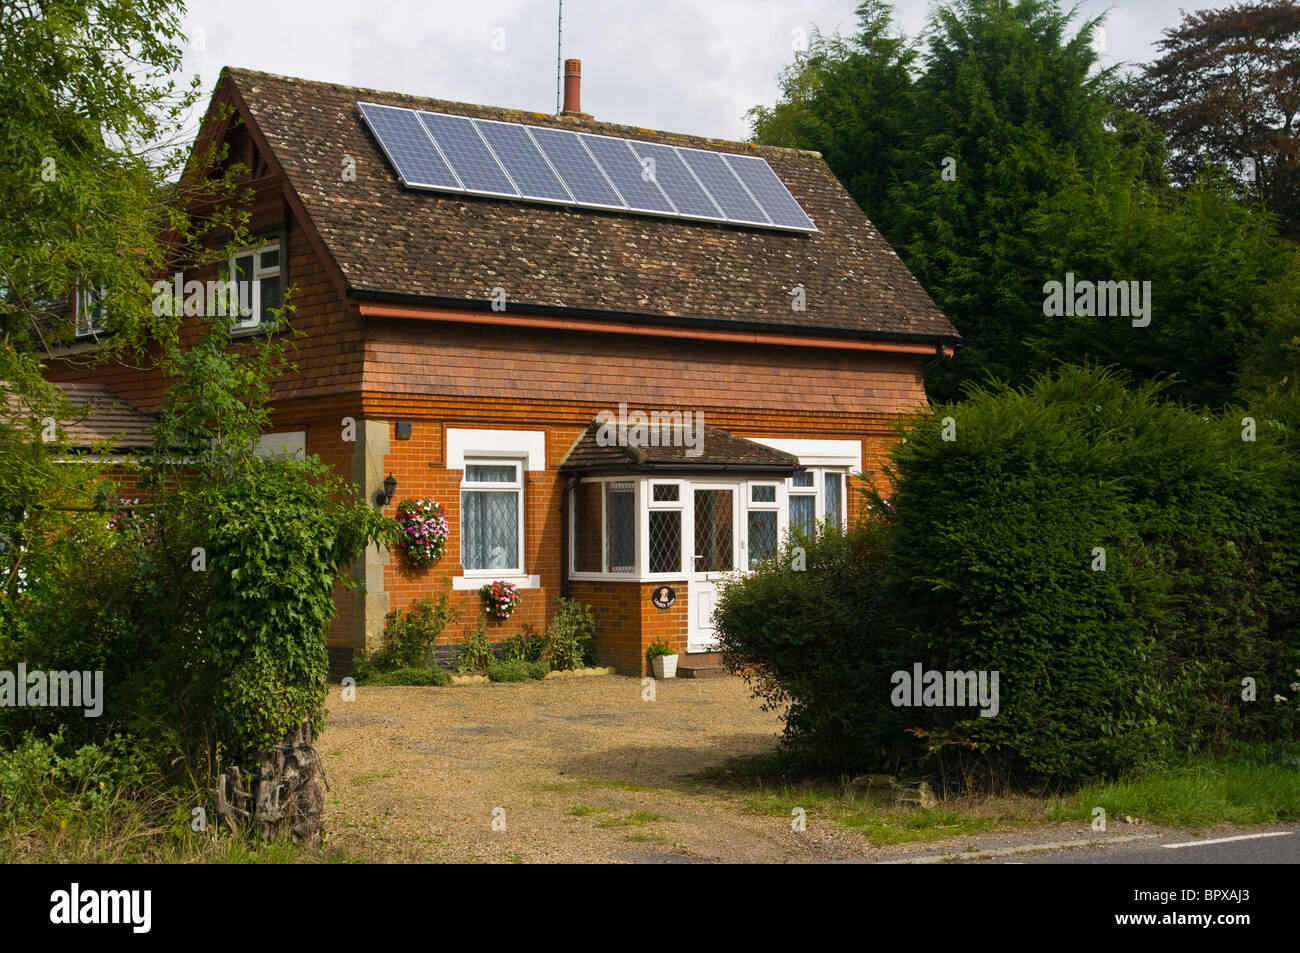 Cottage With Solar Panels On The Roof - Stock Image